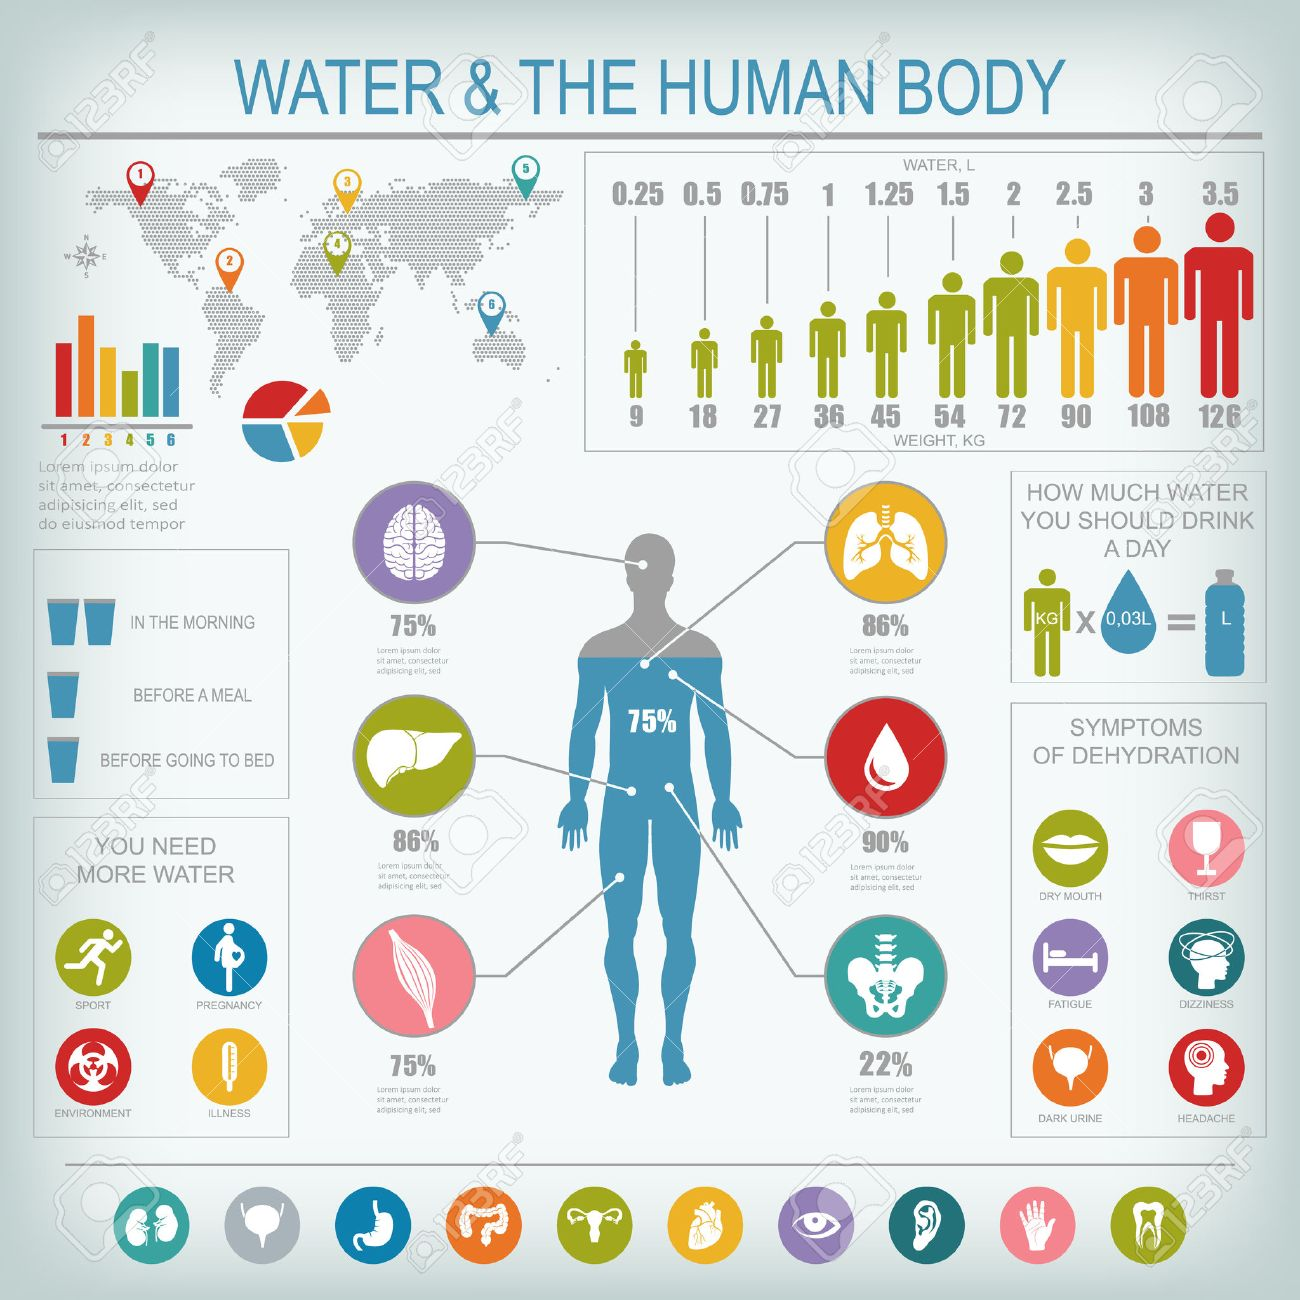 Water and human body infographic. Useful information about water. Concept of healthy lifestyle. Drink more water. - 51557280